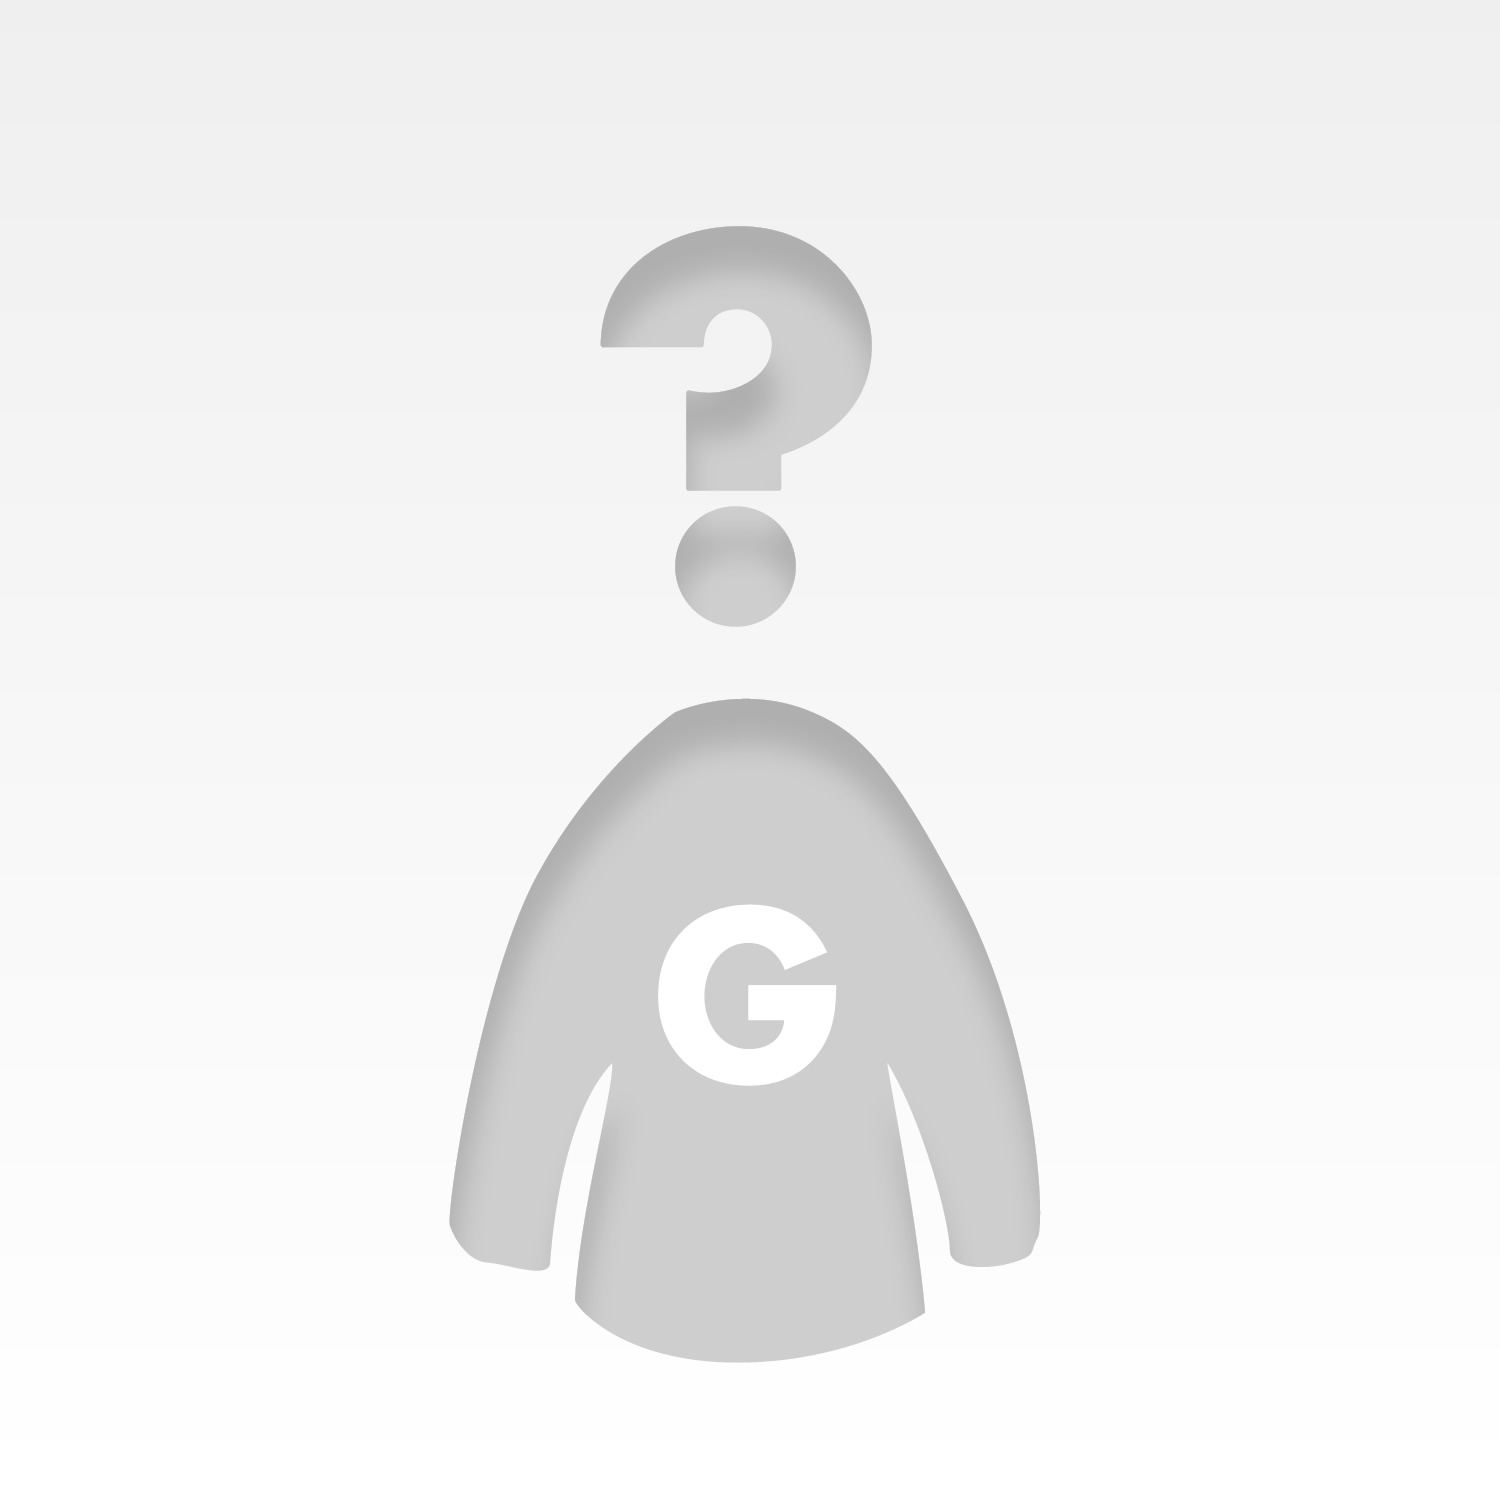 The scb8nro's avatar